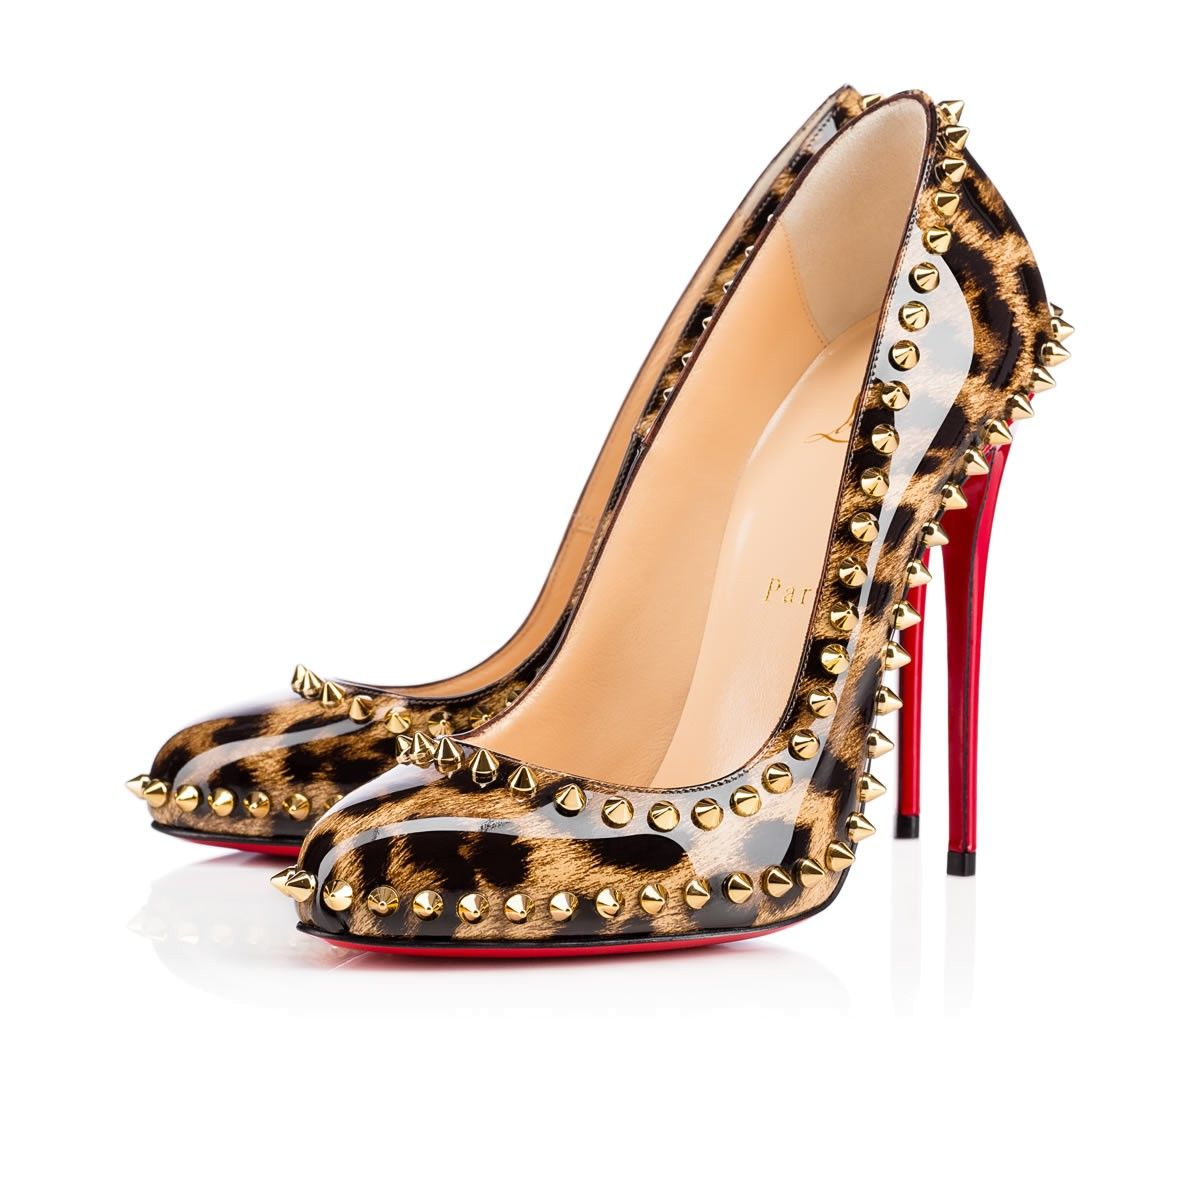 cd1a8d05e63 Shoes - Dorispiky - Christian Louboutin | Christian louboutin Shoes ...